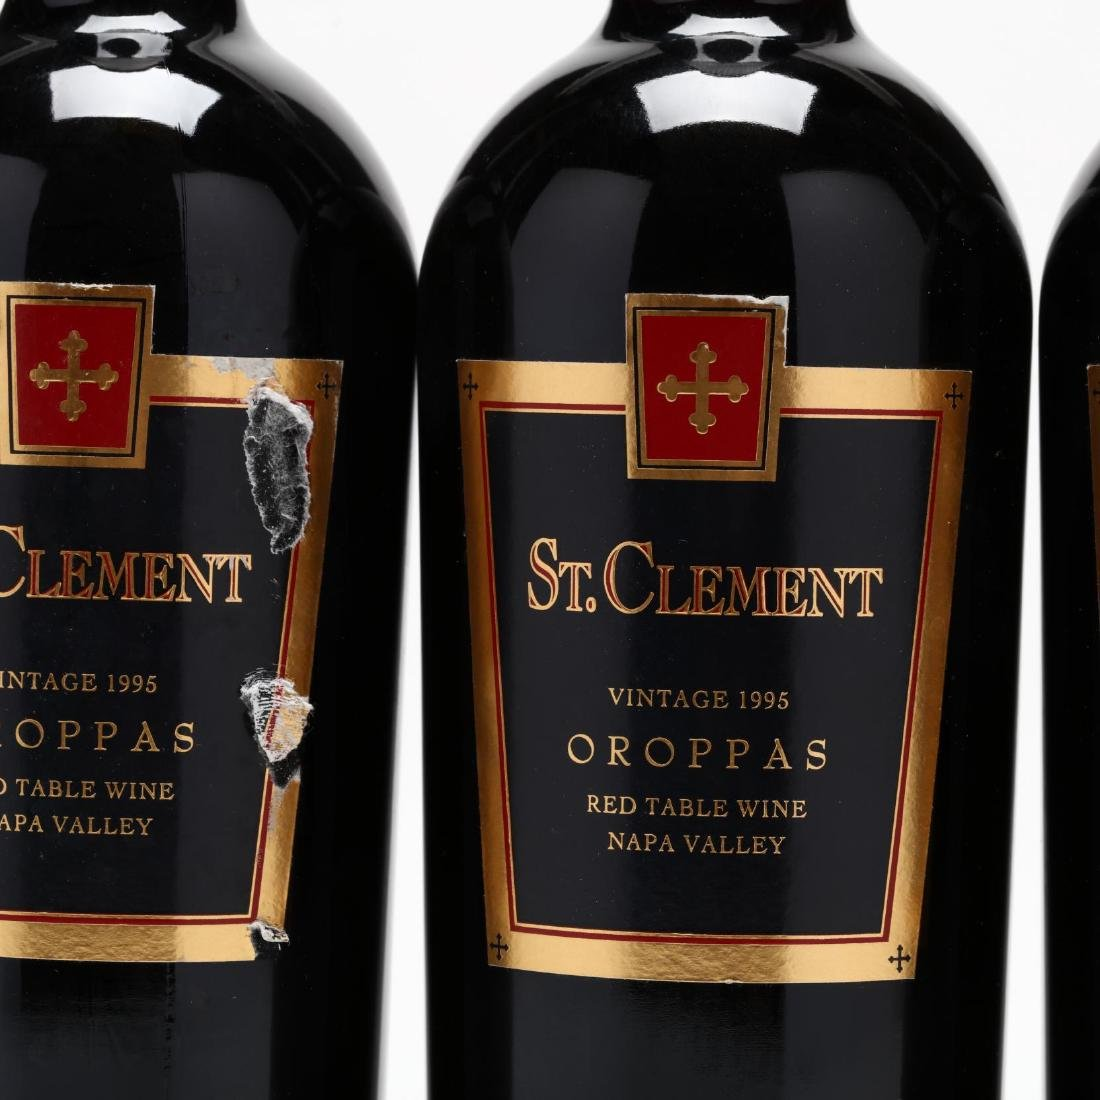 St. Clement Vineyards - Vintage 1995 - 2